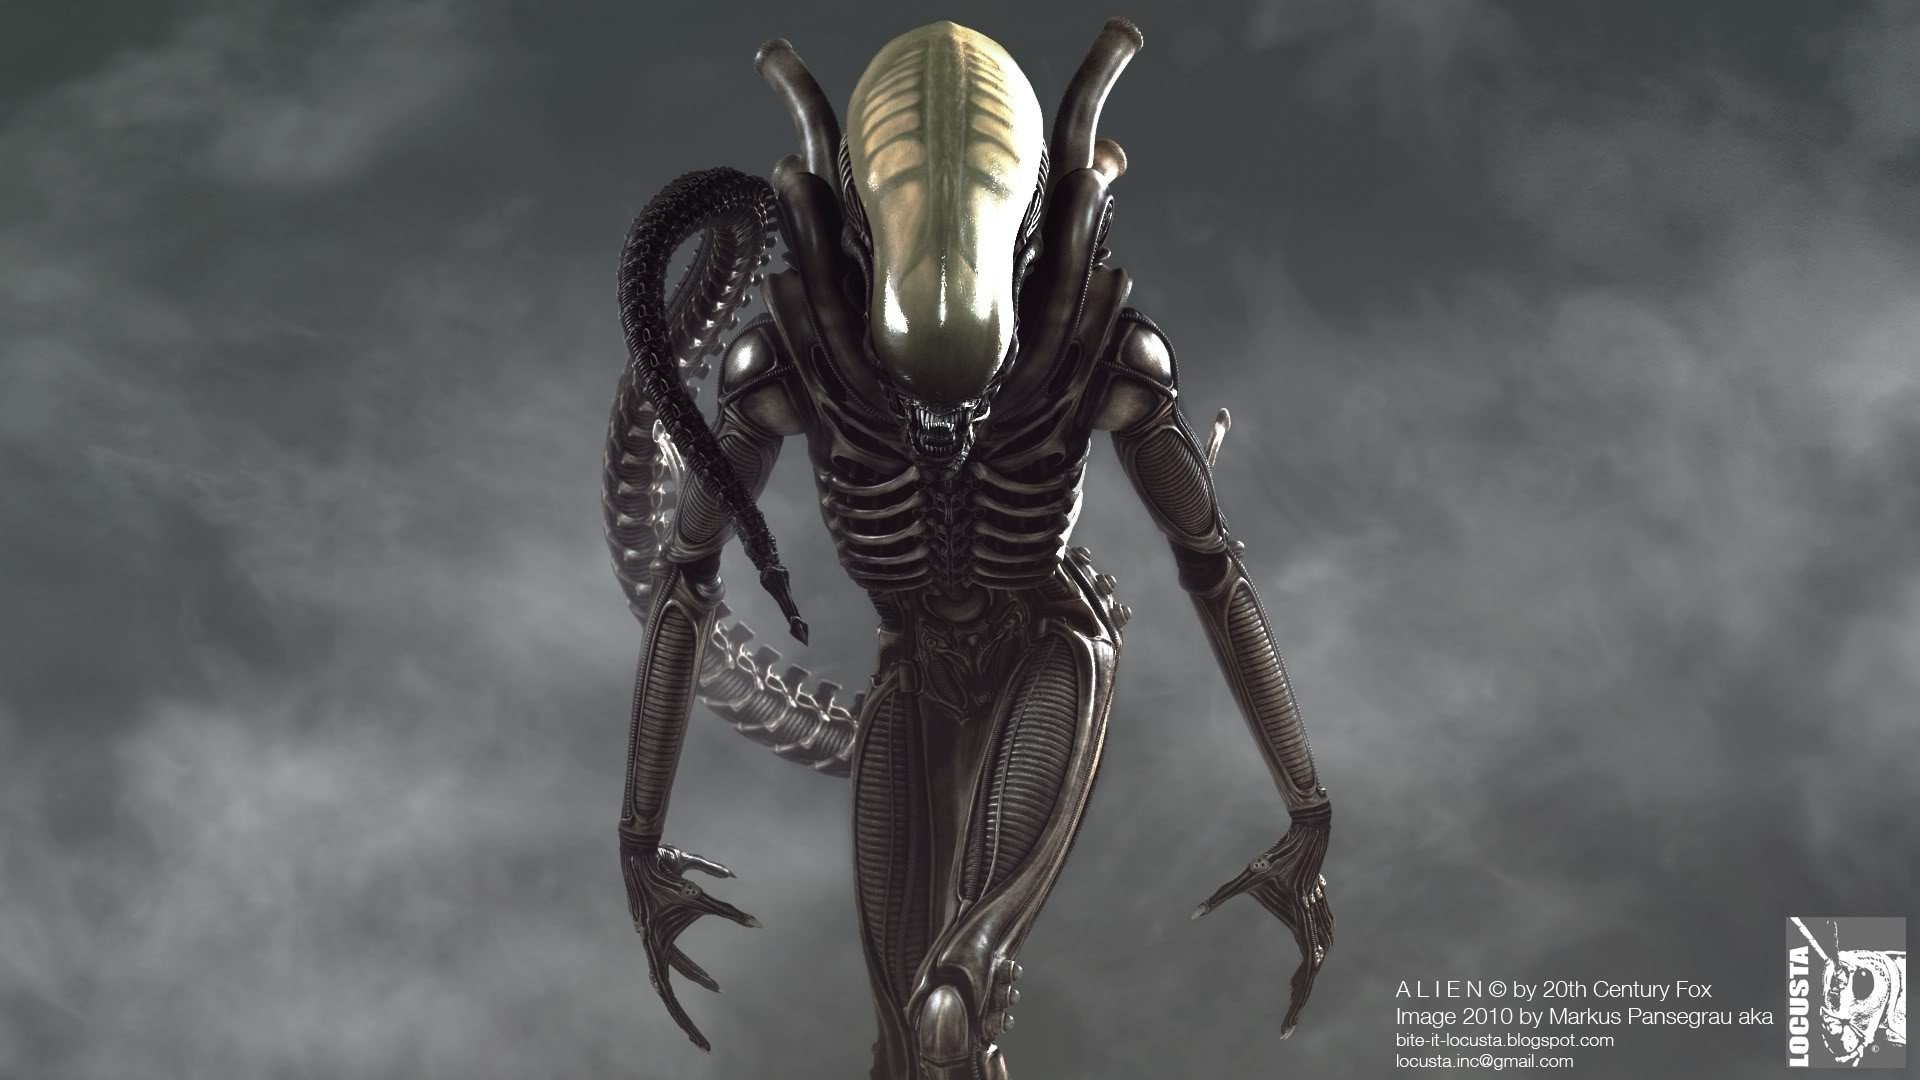 xenomorph space jockey identical body types which came